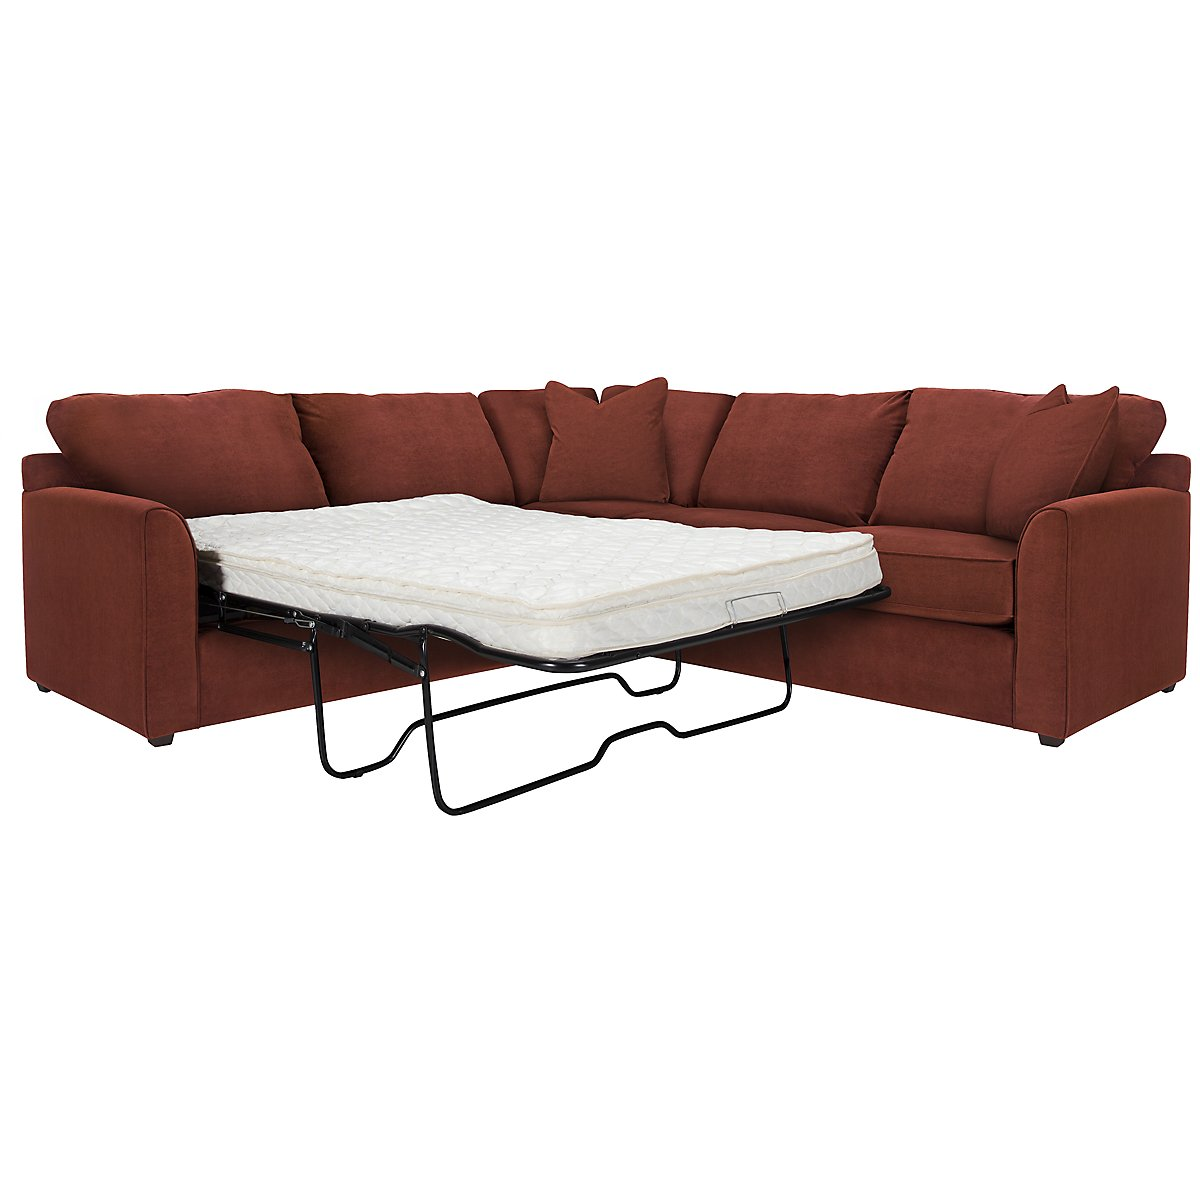 Express3 Red Microfiber Two-Arm Left Innerspring Sleeper Sectional